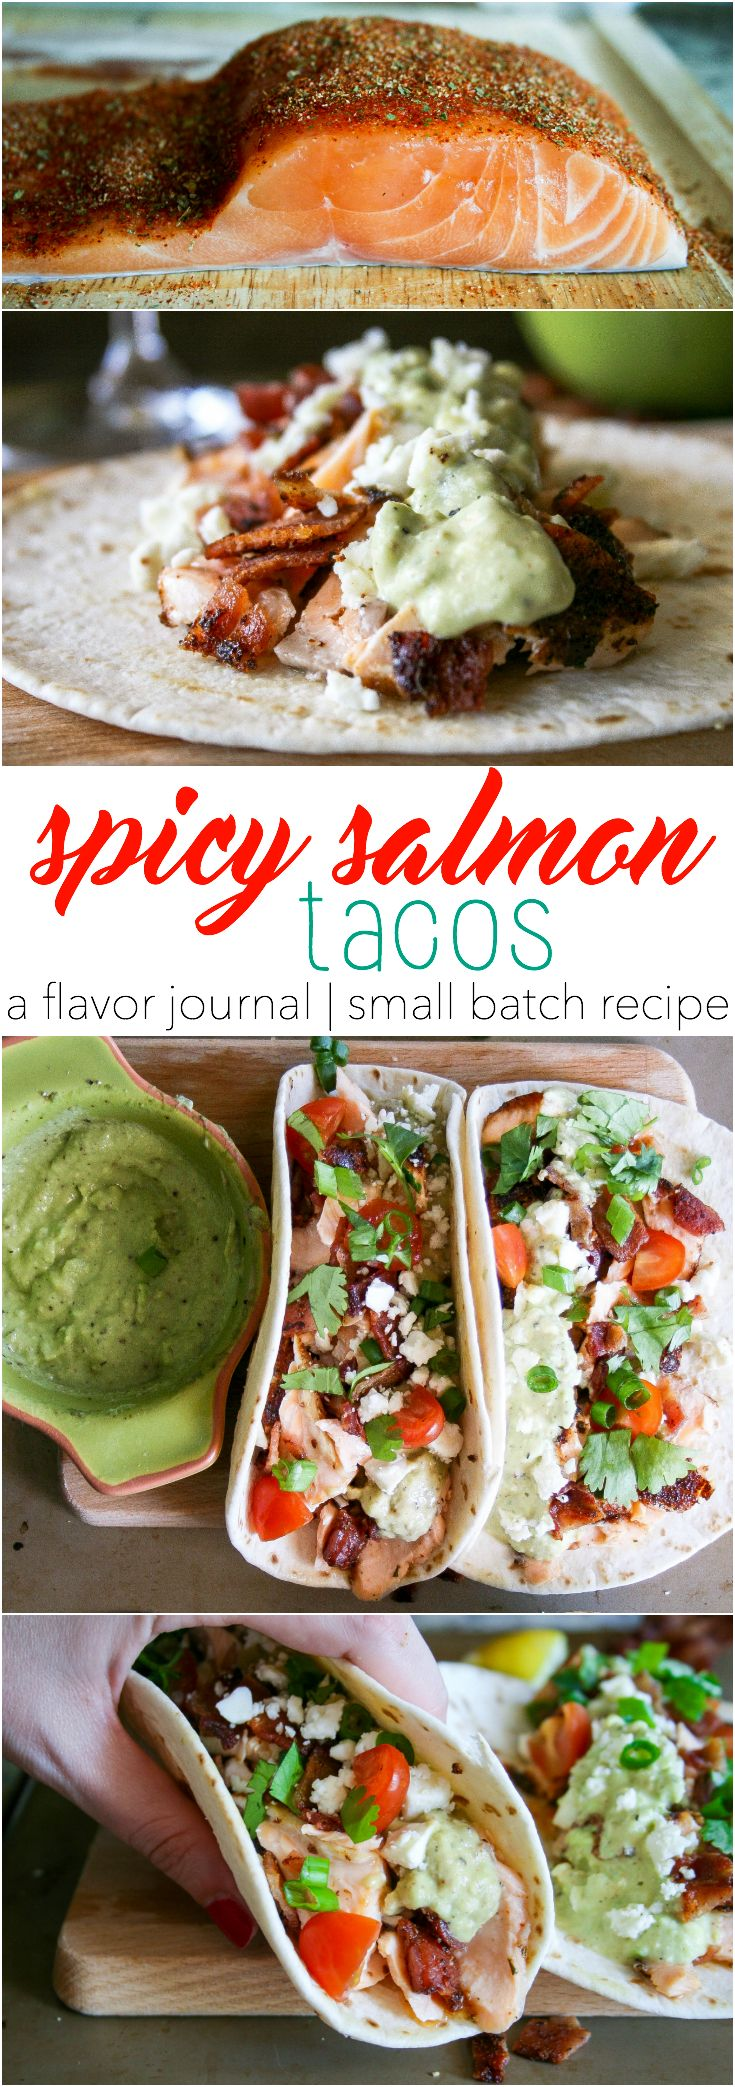 fresh salmon, seasoned with spices and olive oil, is pan-seared and flaked apart into a warm tortilla. add a little smoked bacon, feta cheese, and veggies to make my favorite spicy salmon tacos! spicy salmon tacos : a small batch recipe.http://aflavorjournal.com/spicy-salmon-tacos-a-small-batch-recipe/